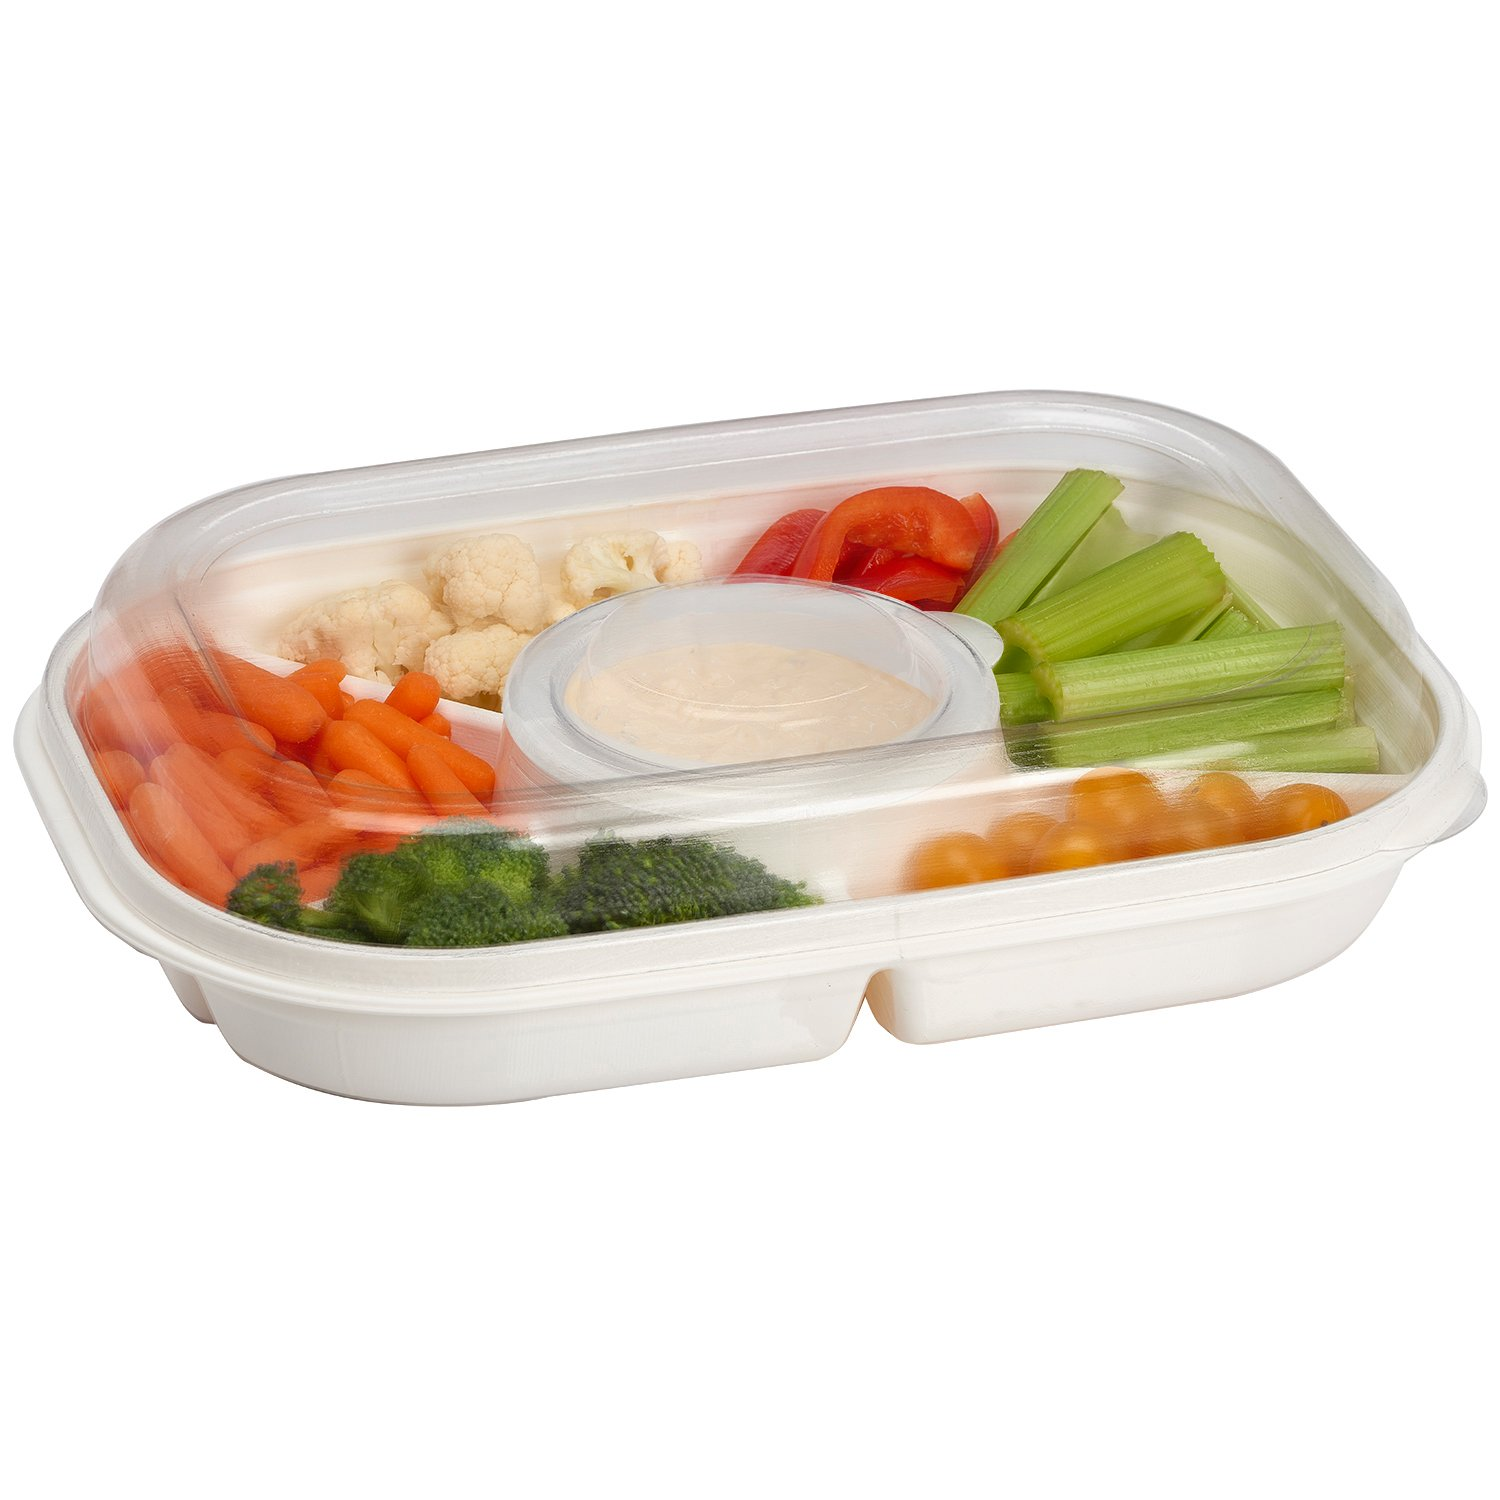 Party Platter Divided Portable Party Serving Tray Serving-Ware With Lid, |6| Extra Large Compartments for Dip, Appetizers, Snacks, Veggies, Chips and Holiday Foods by Buddeez by Buddeez